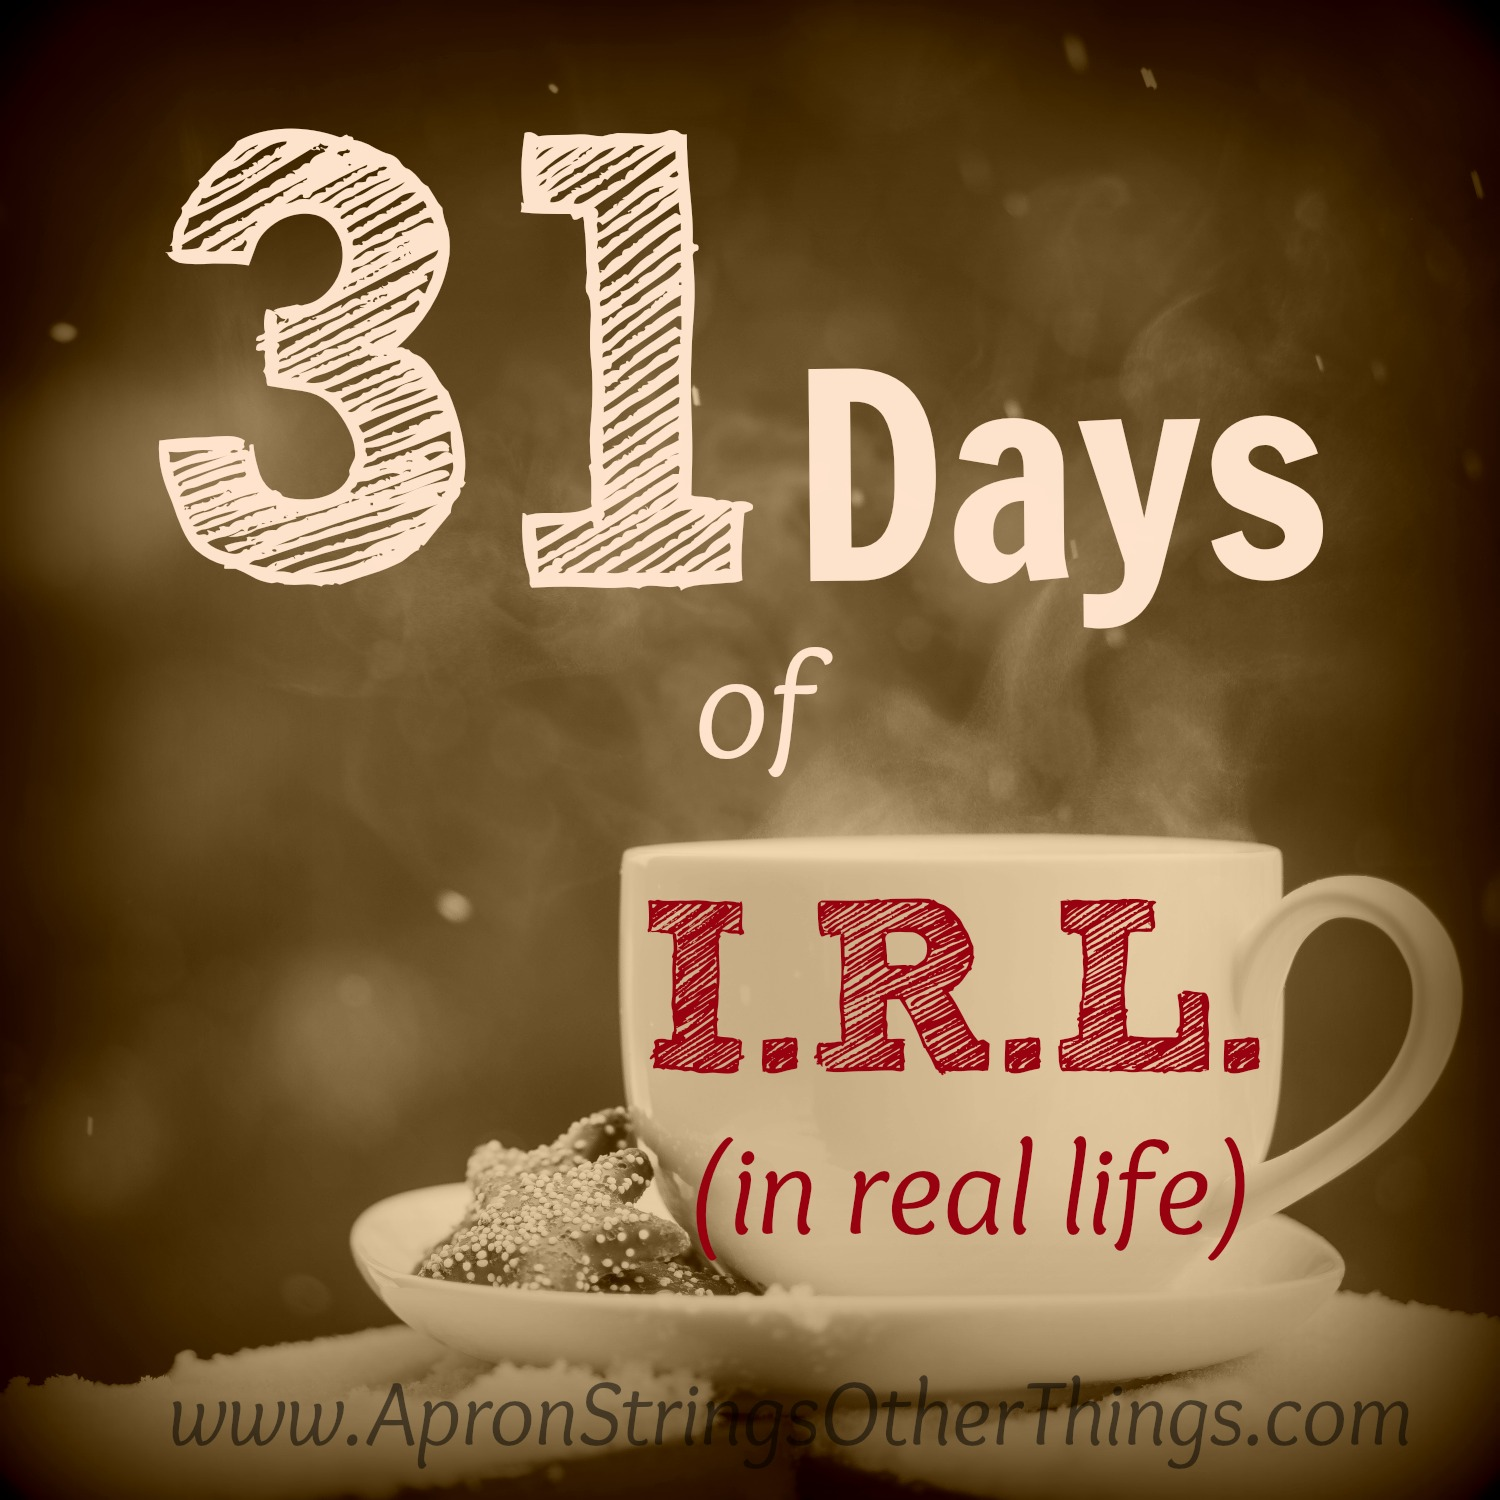 31 Days of I.R.L. (in real life) at ApronStringsOtherThings.com